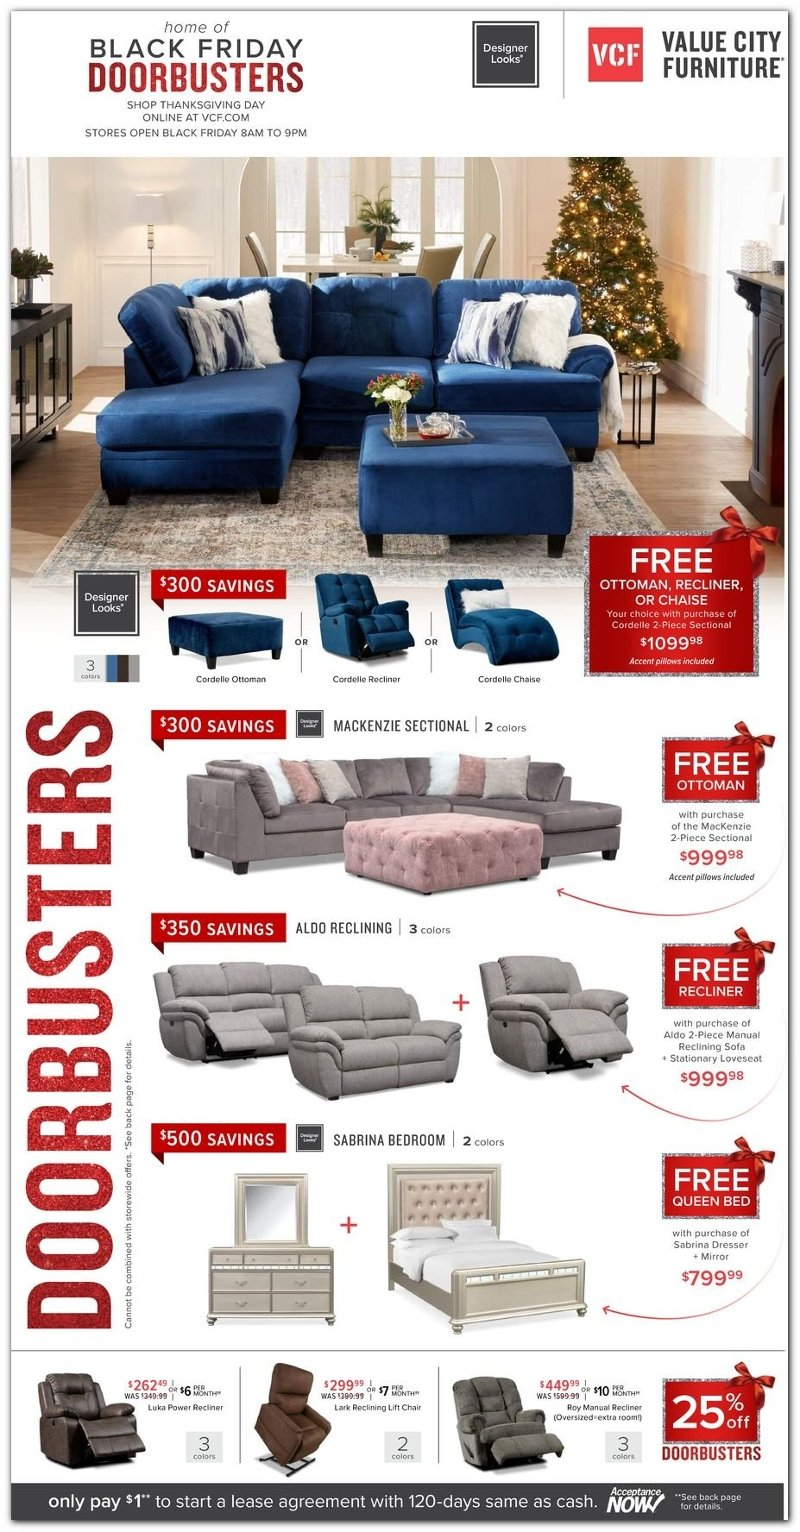 Value City Furniture Black Friday 2020 Page 1